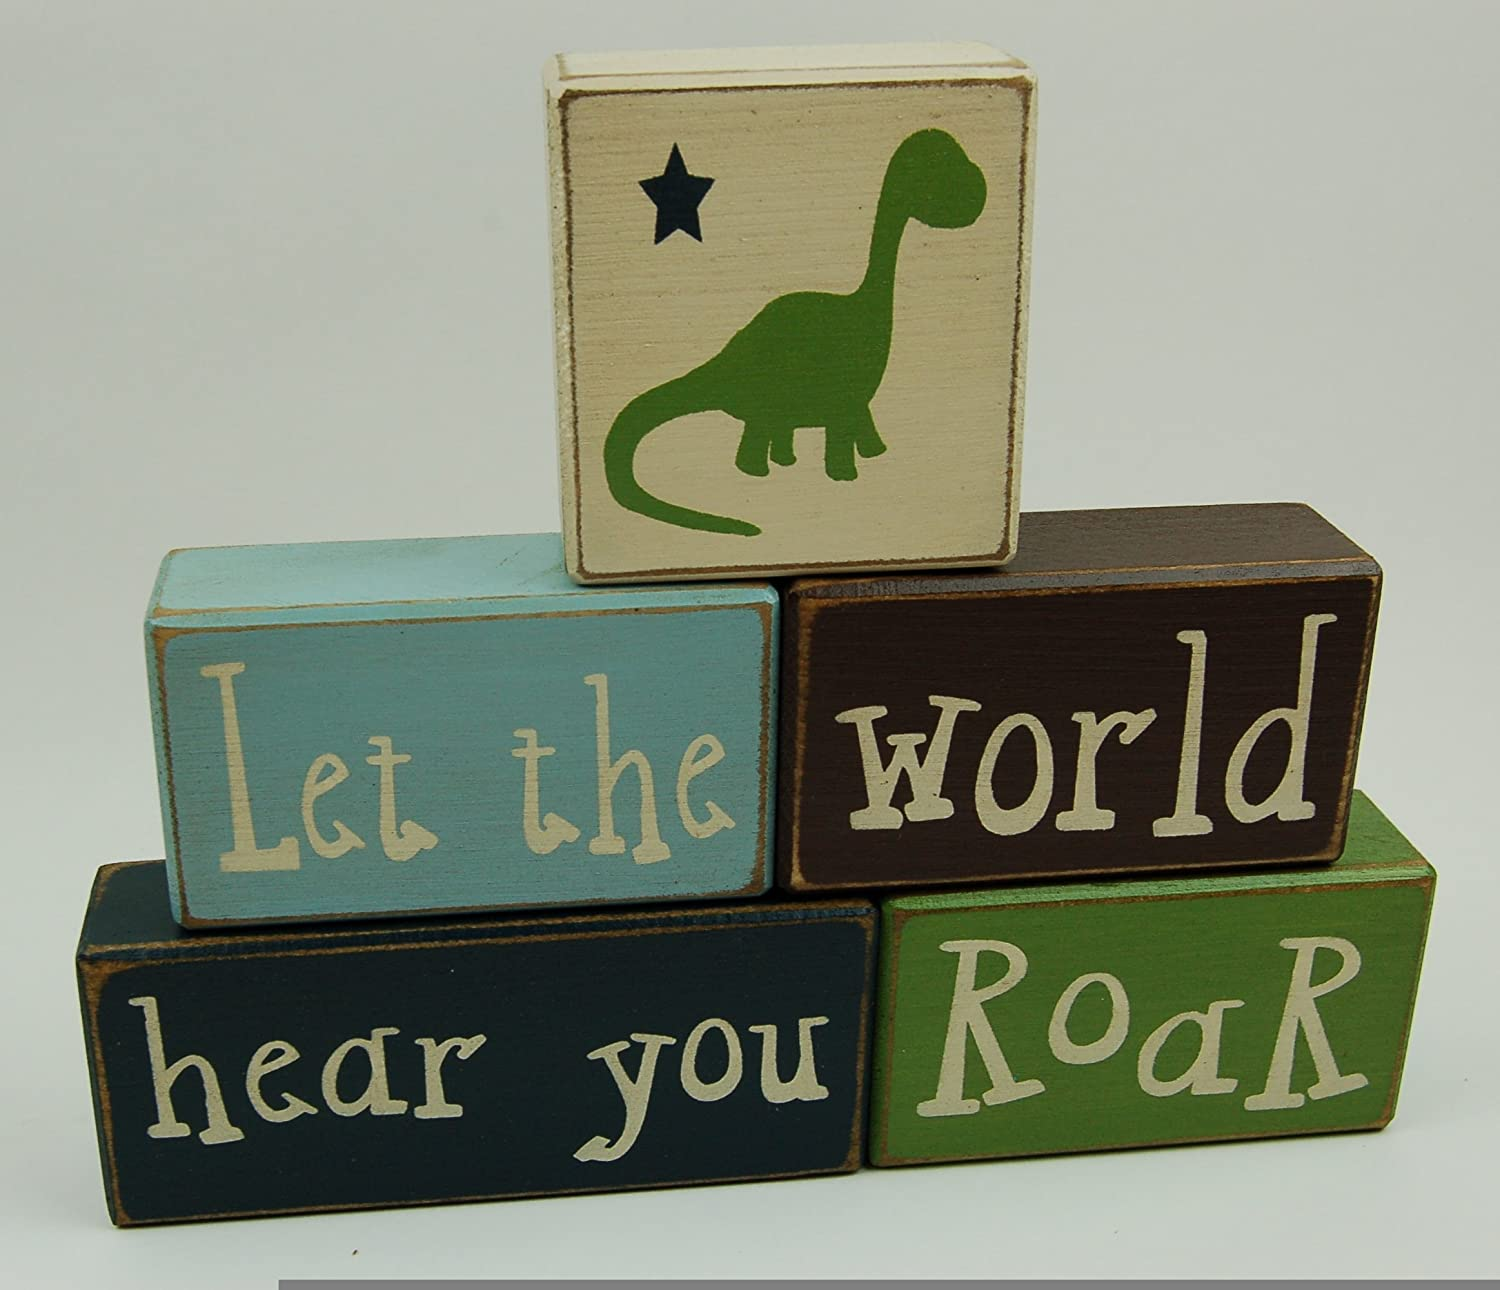 Let The World Hear You Roar Primitive Country Wood Stacking Sign Blocks Dinosaur Decor Childrens Room Birthday Baby Shower Centerpiece Nursery Room Decor